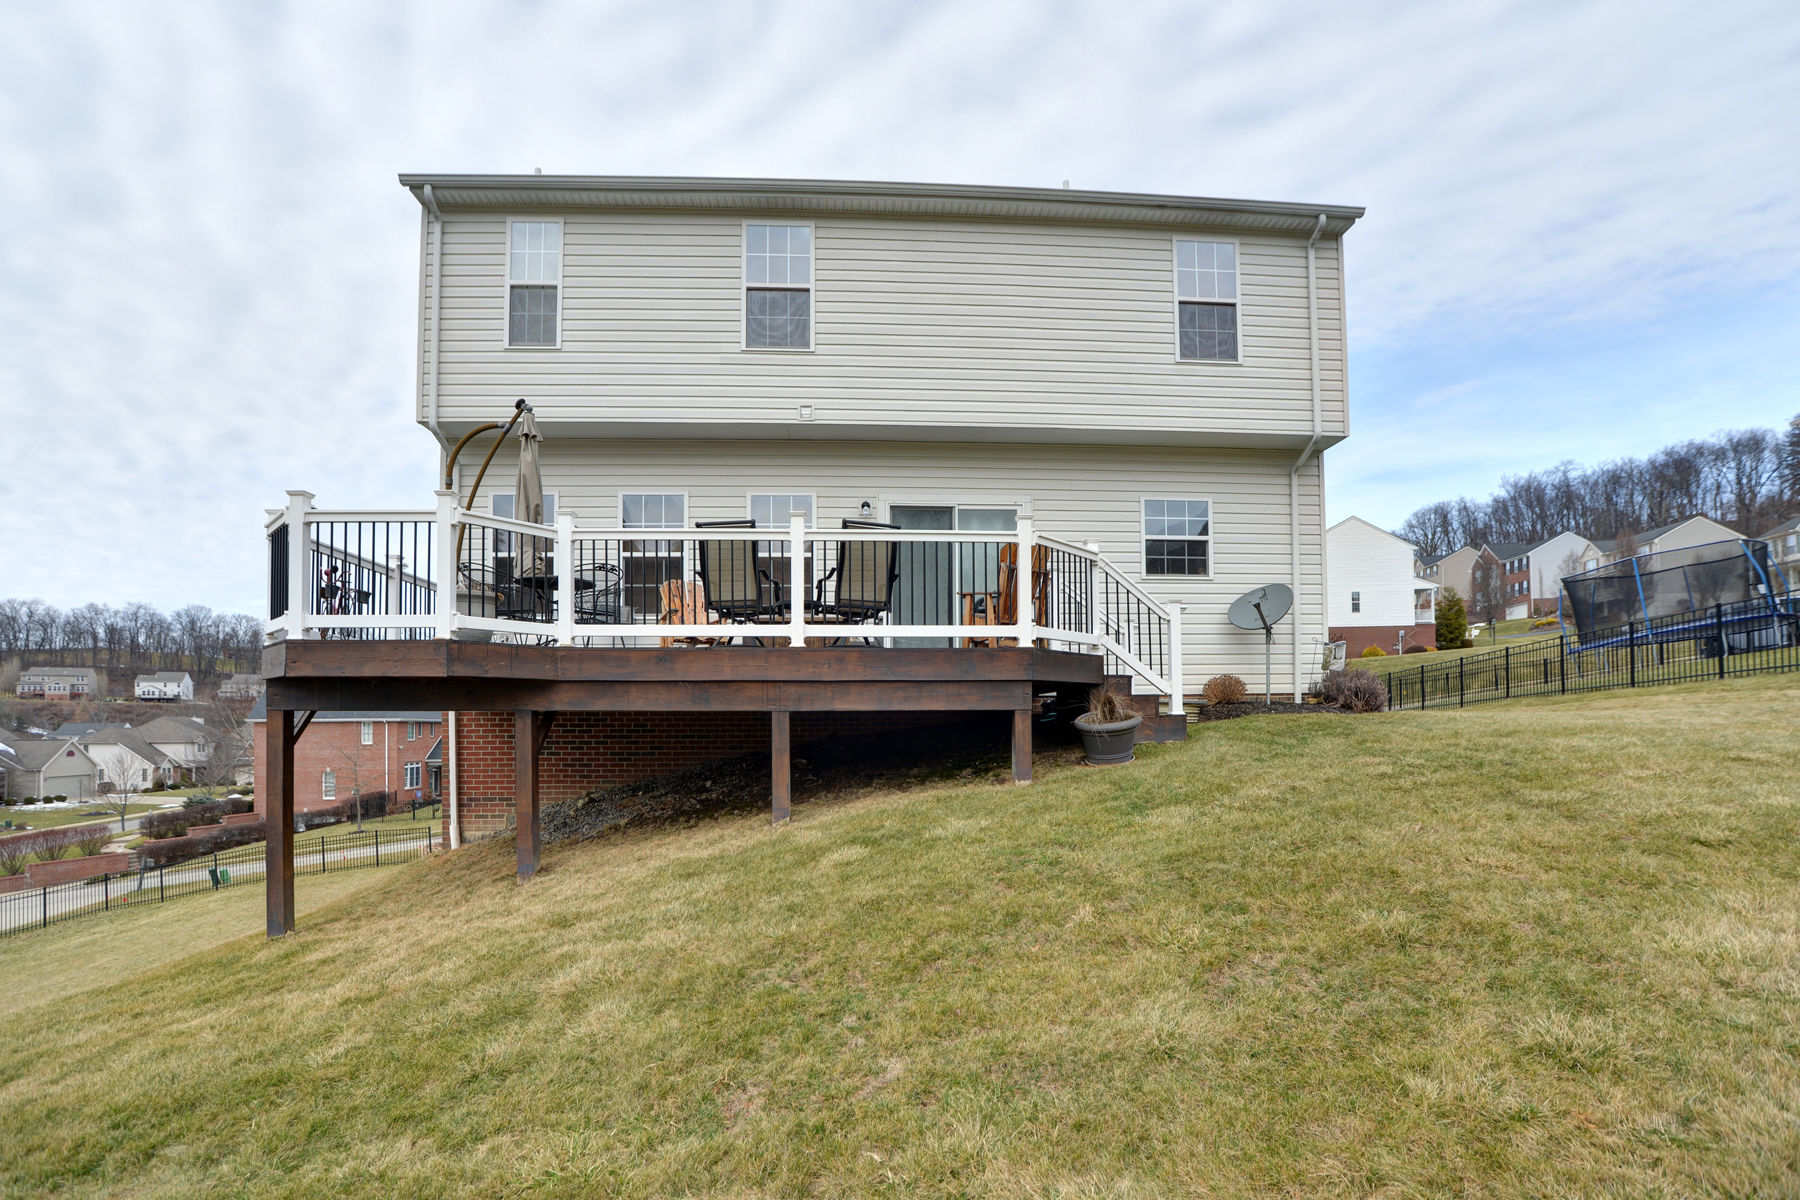 Additional photo for property listing at 103 Middlecrest Dr. Washington, Pa 15301 103 Middlecrest Dr. Washington, Pennsylvania 15301 United States